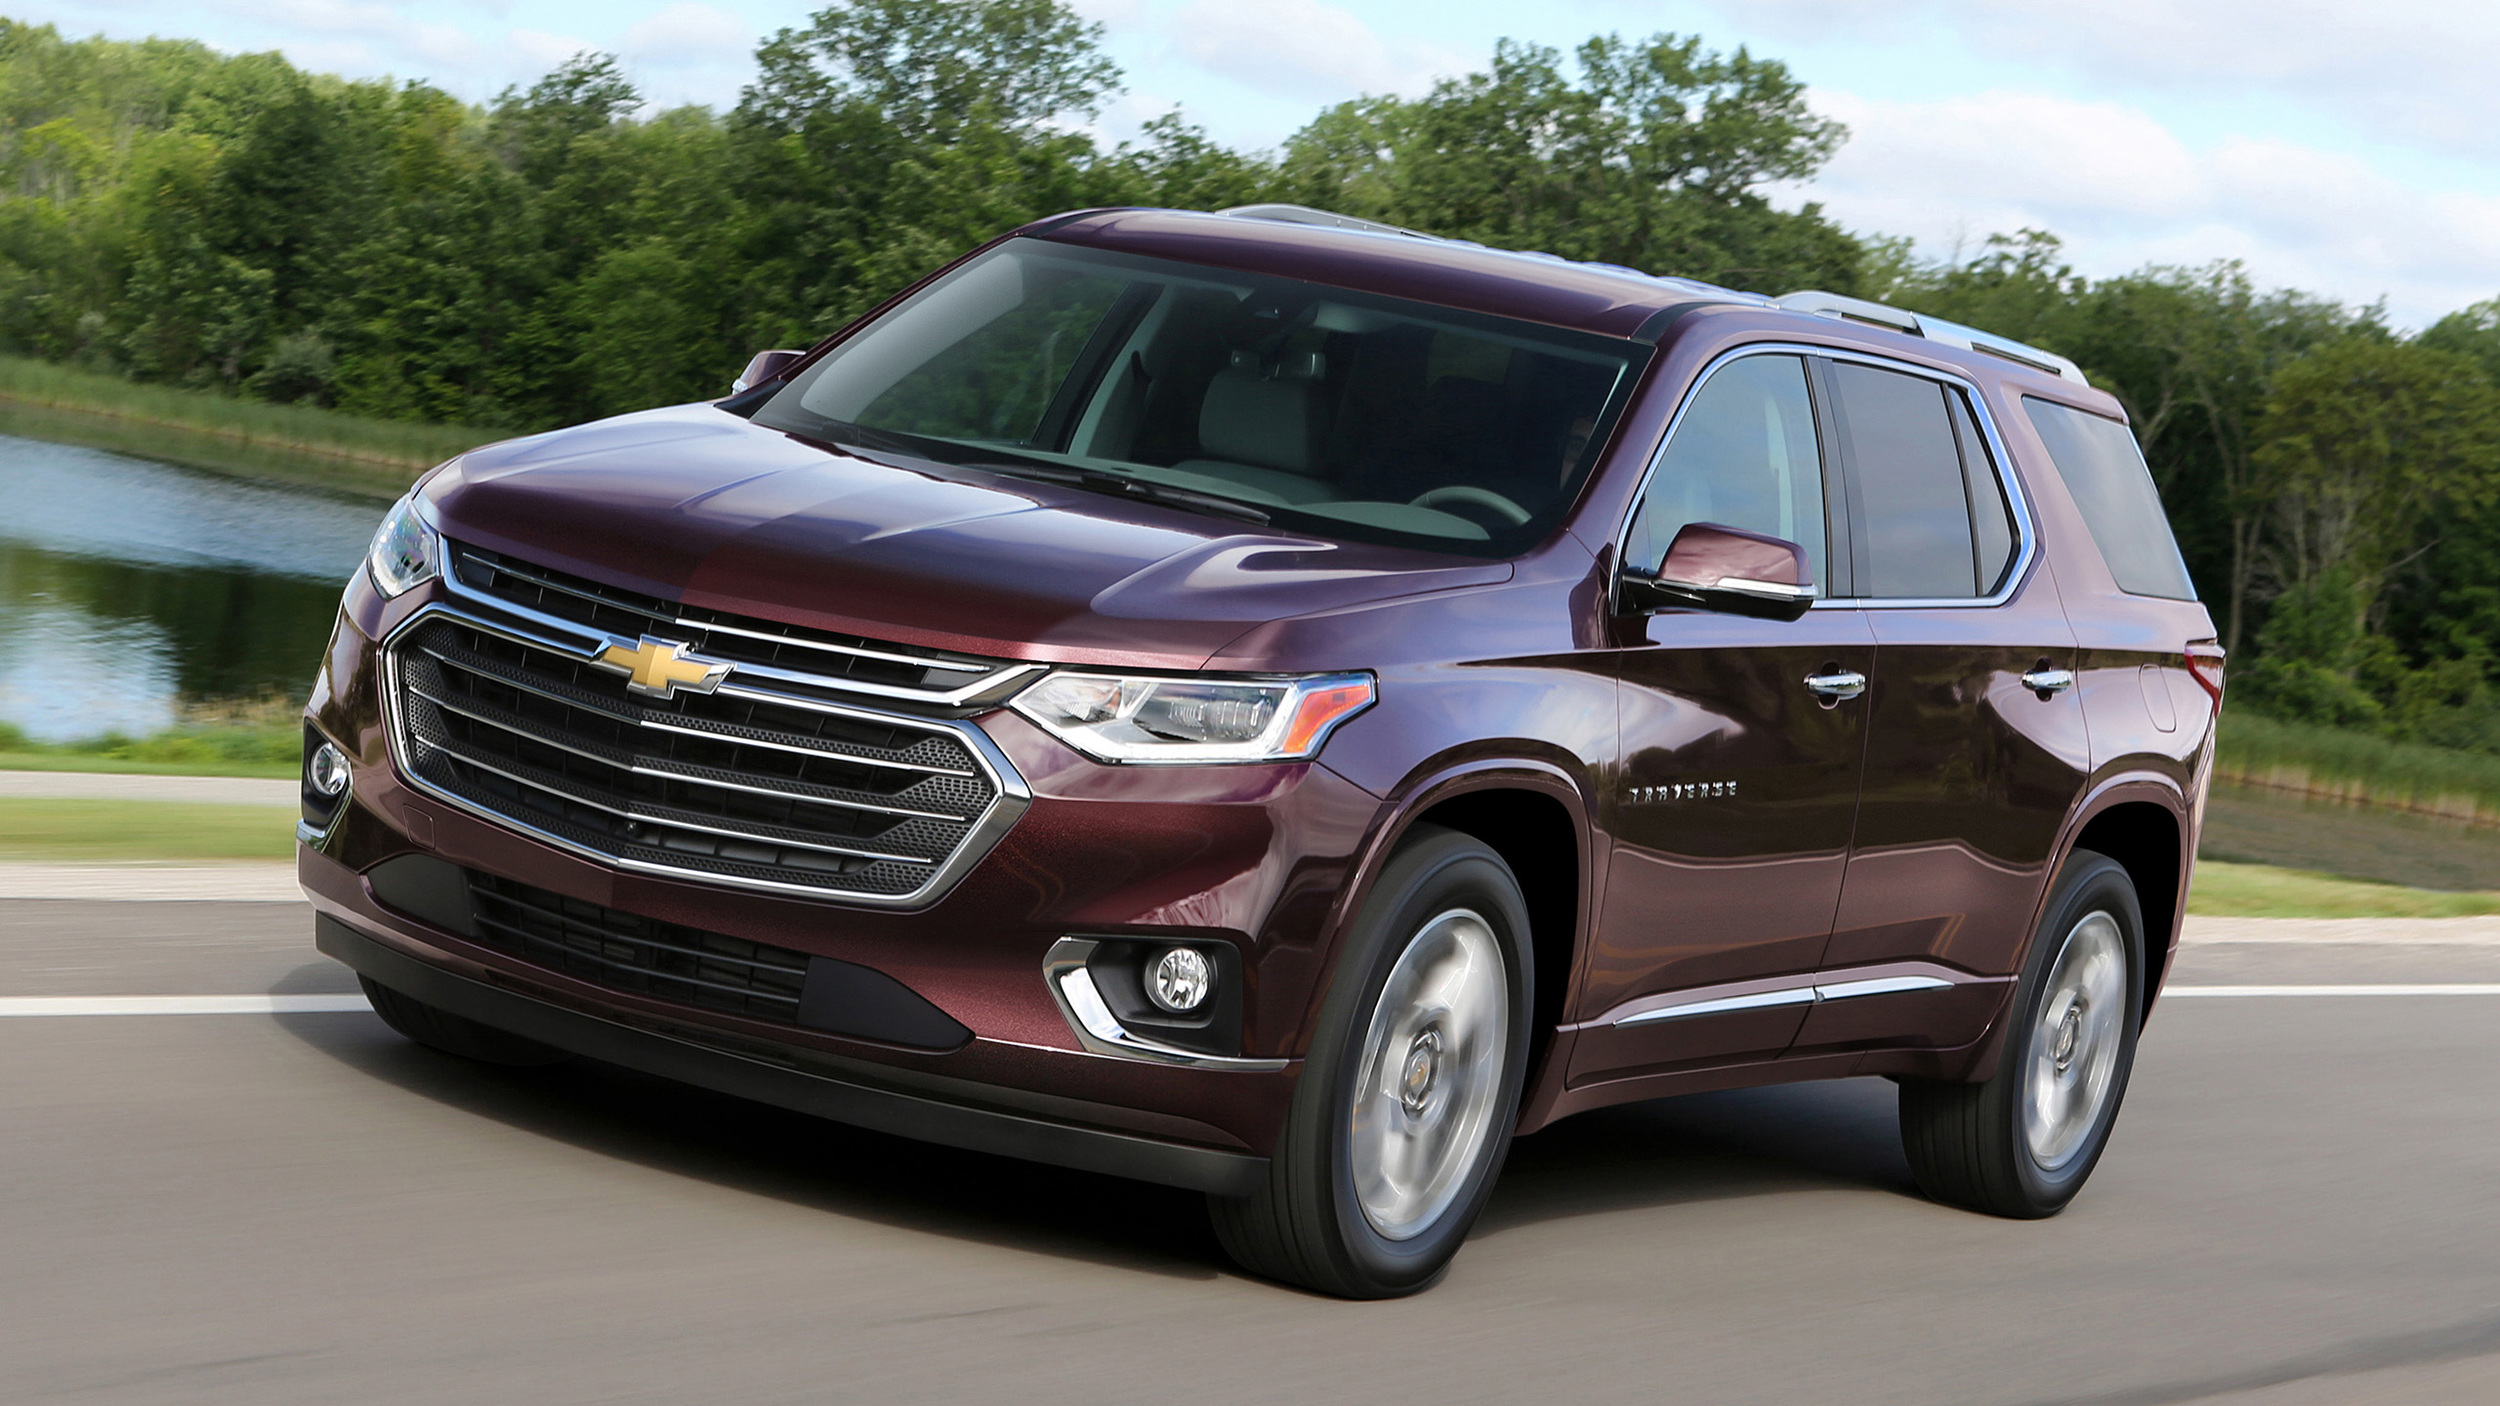 2018 Chevy Traverse First Drive | Bigger, but not the best | Autoblog